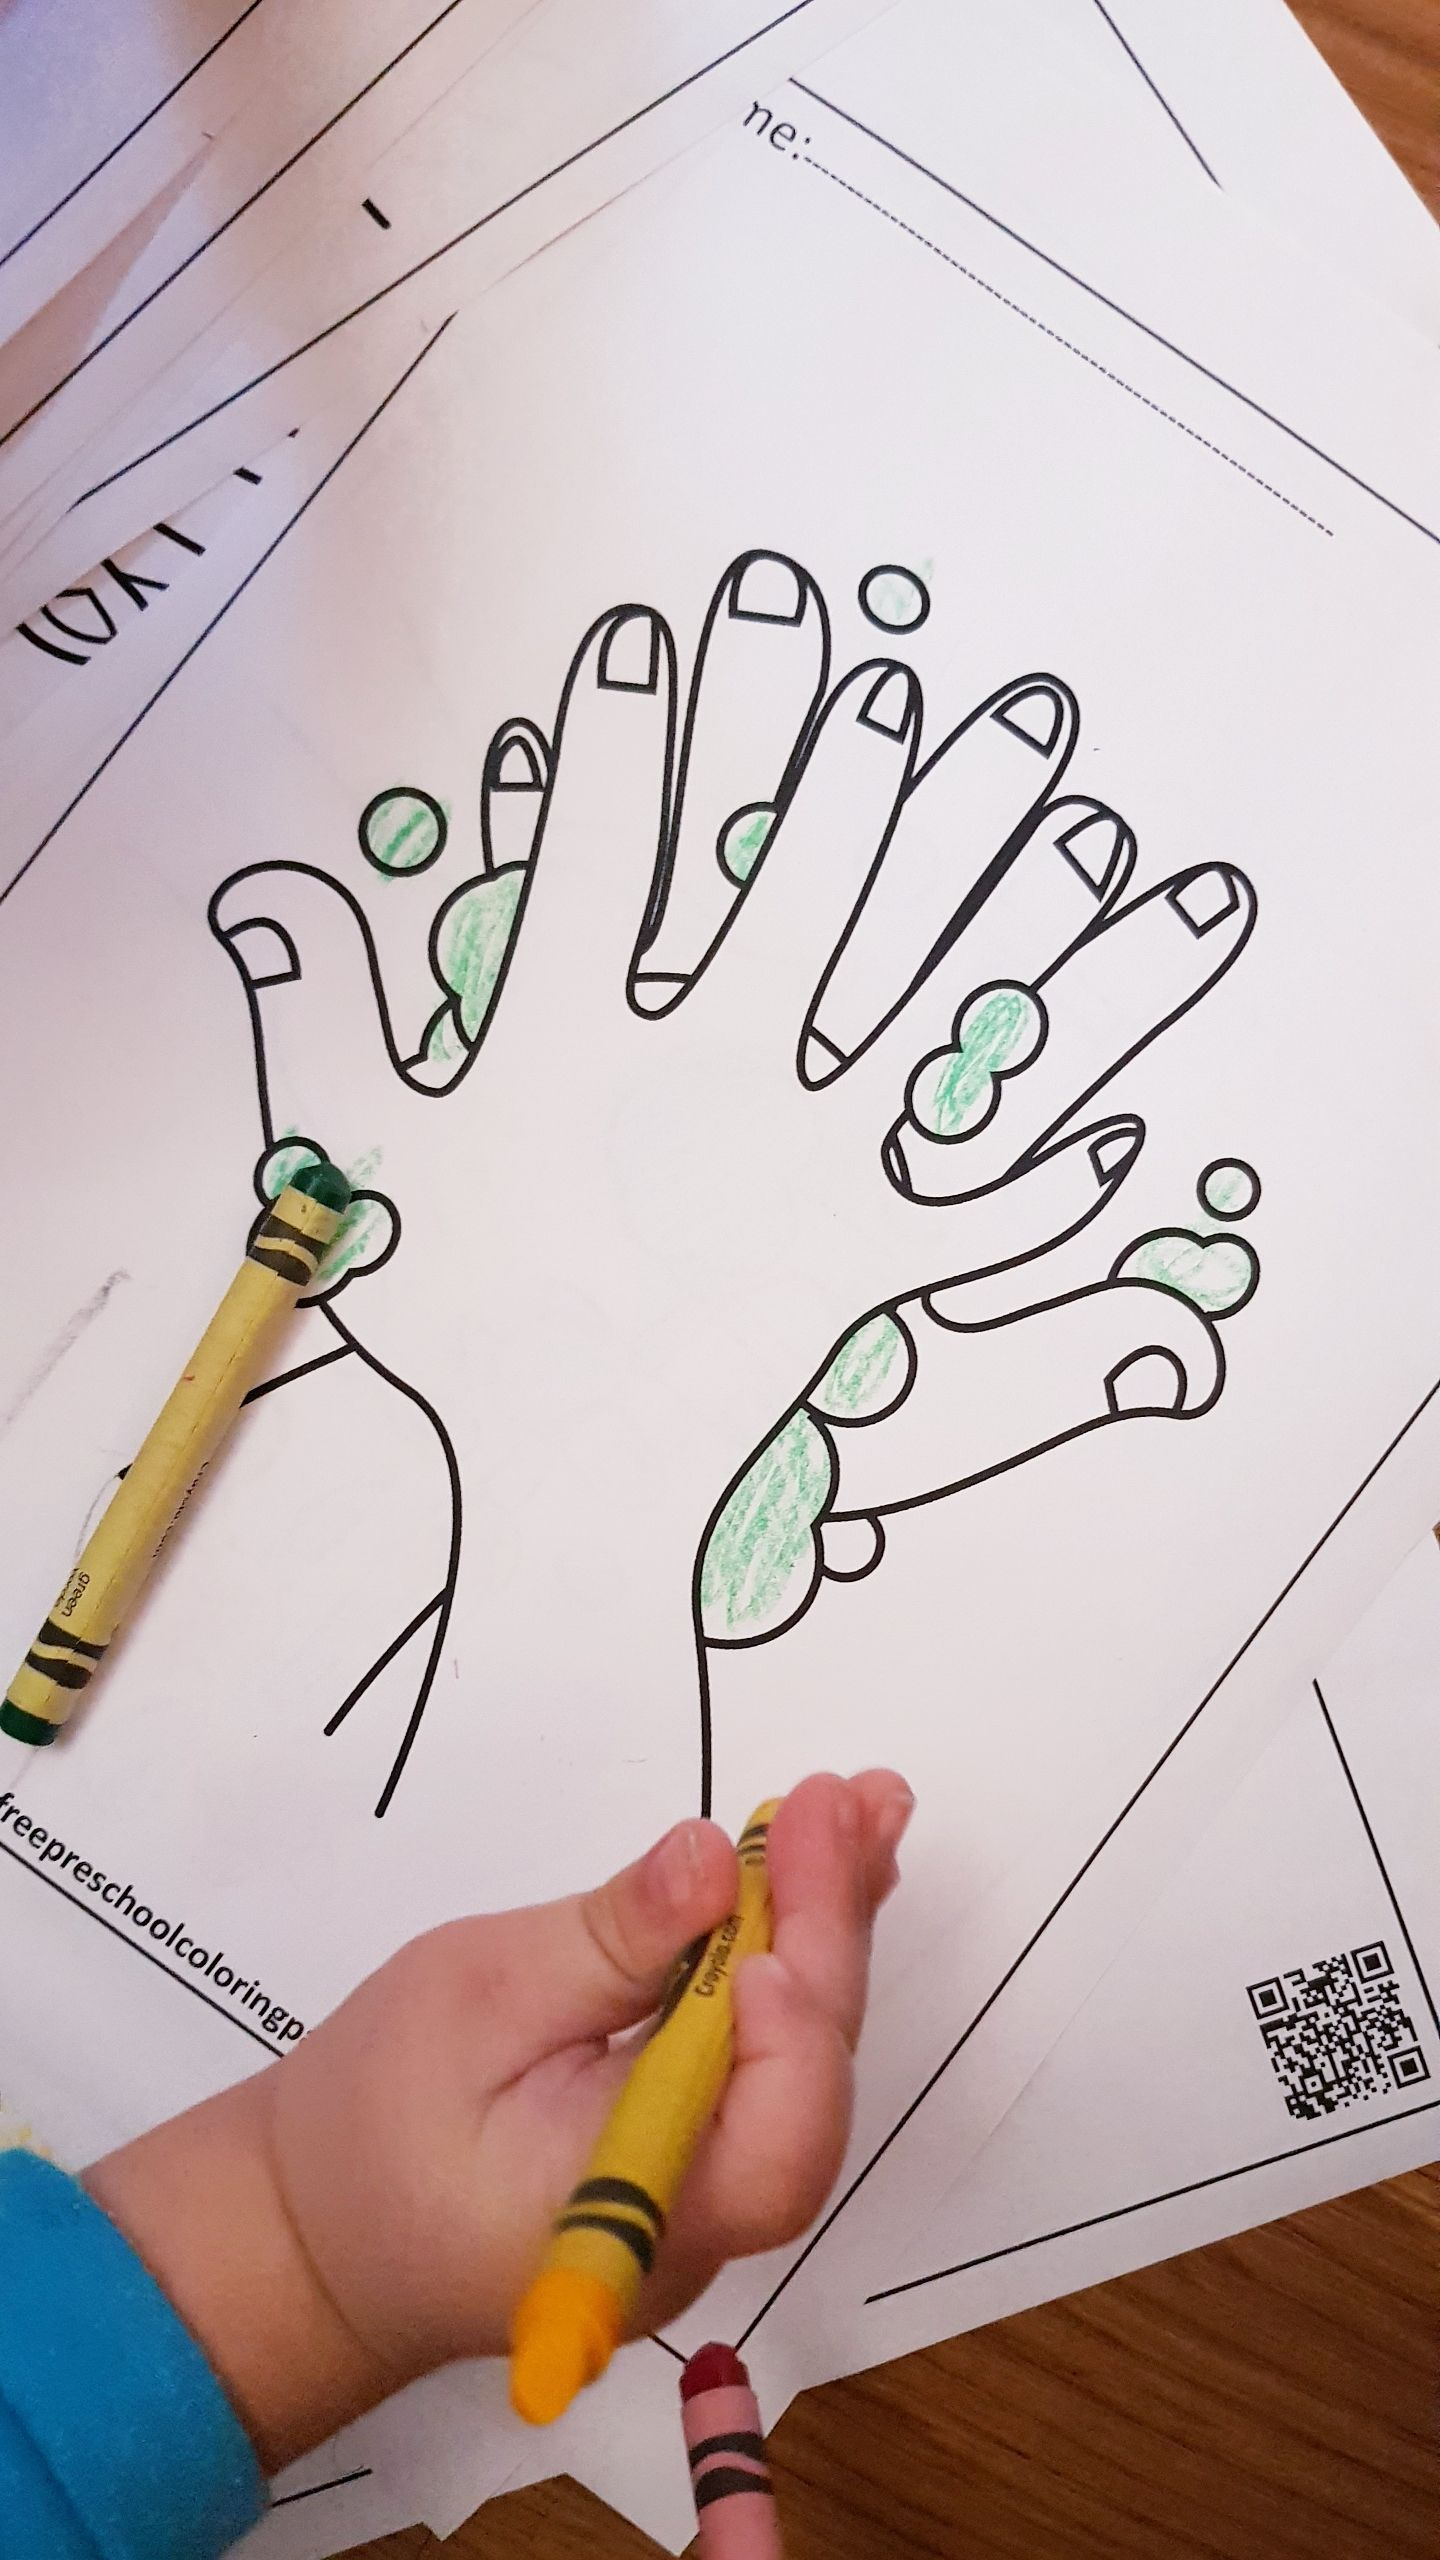 Hand Washing And Germs Activity For Kids In